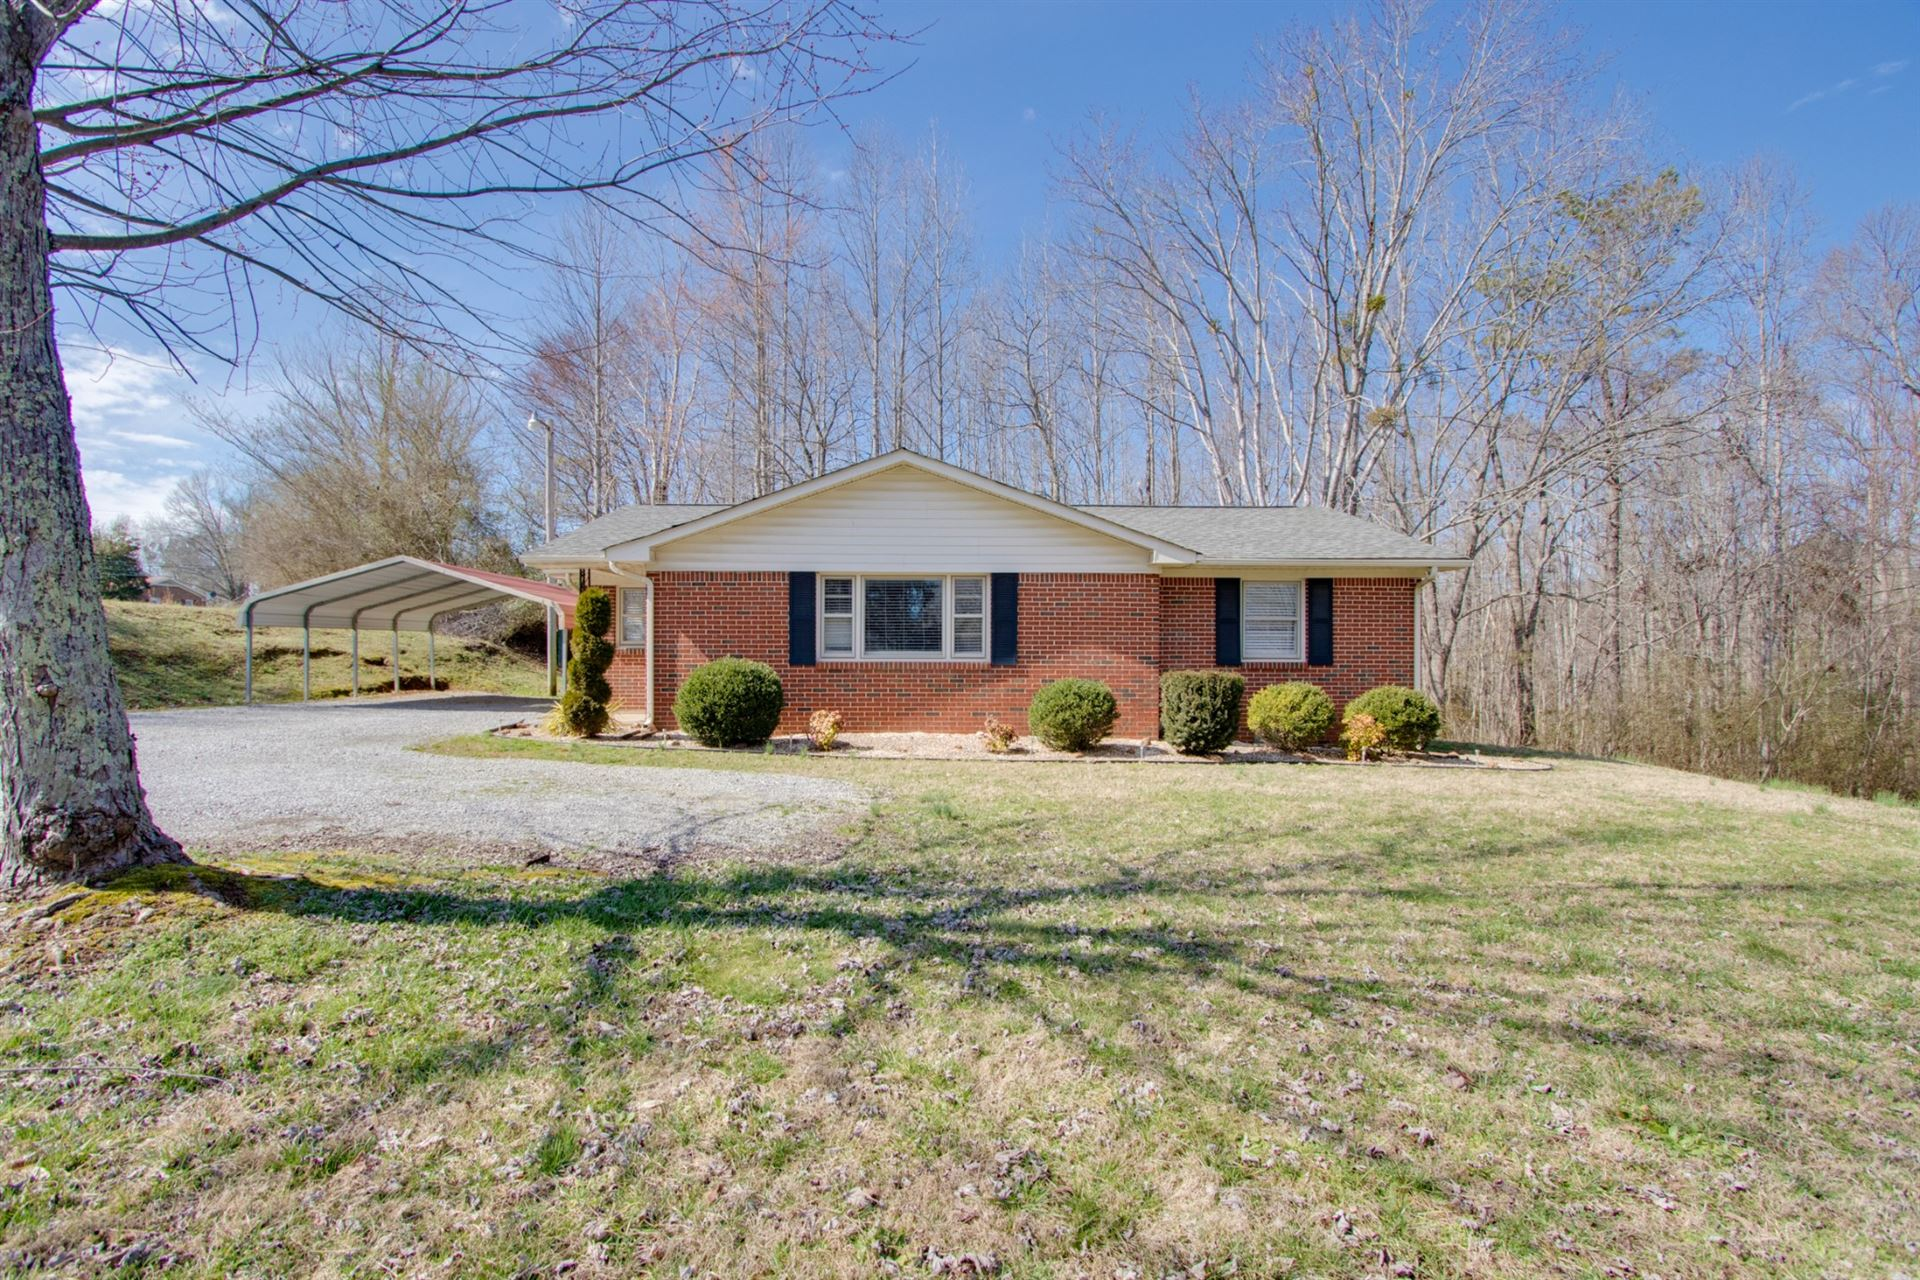 3625 Cookeville Hwy, Smithville, TN 37166 - MLS#: 2232495